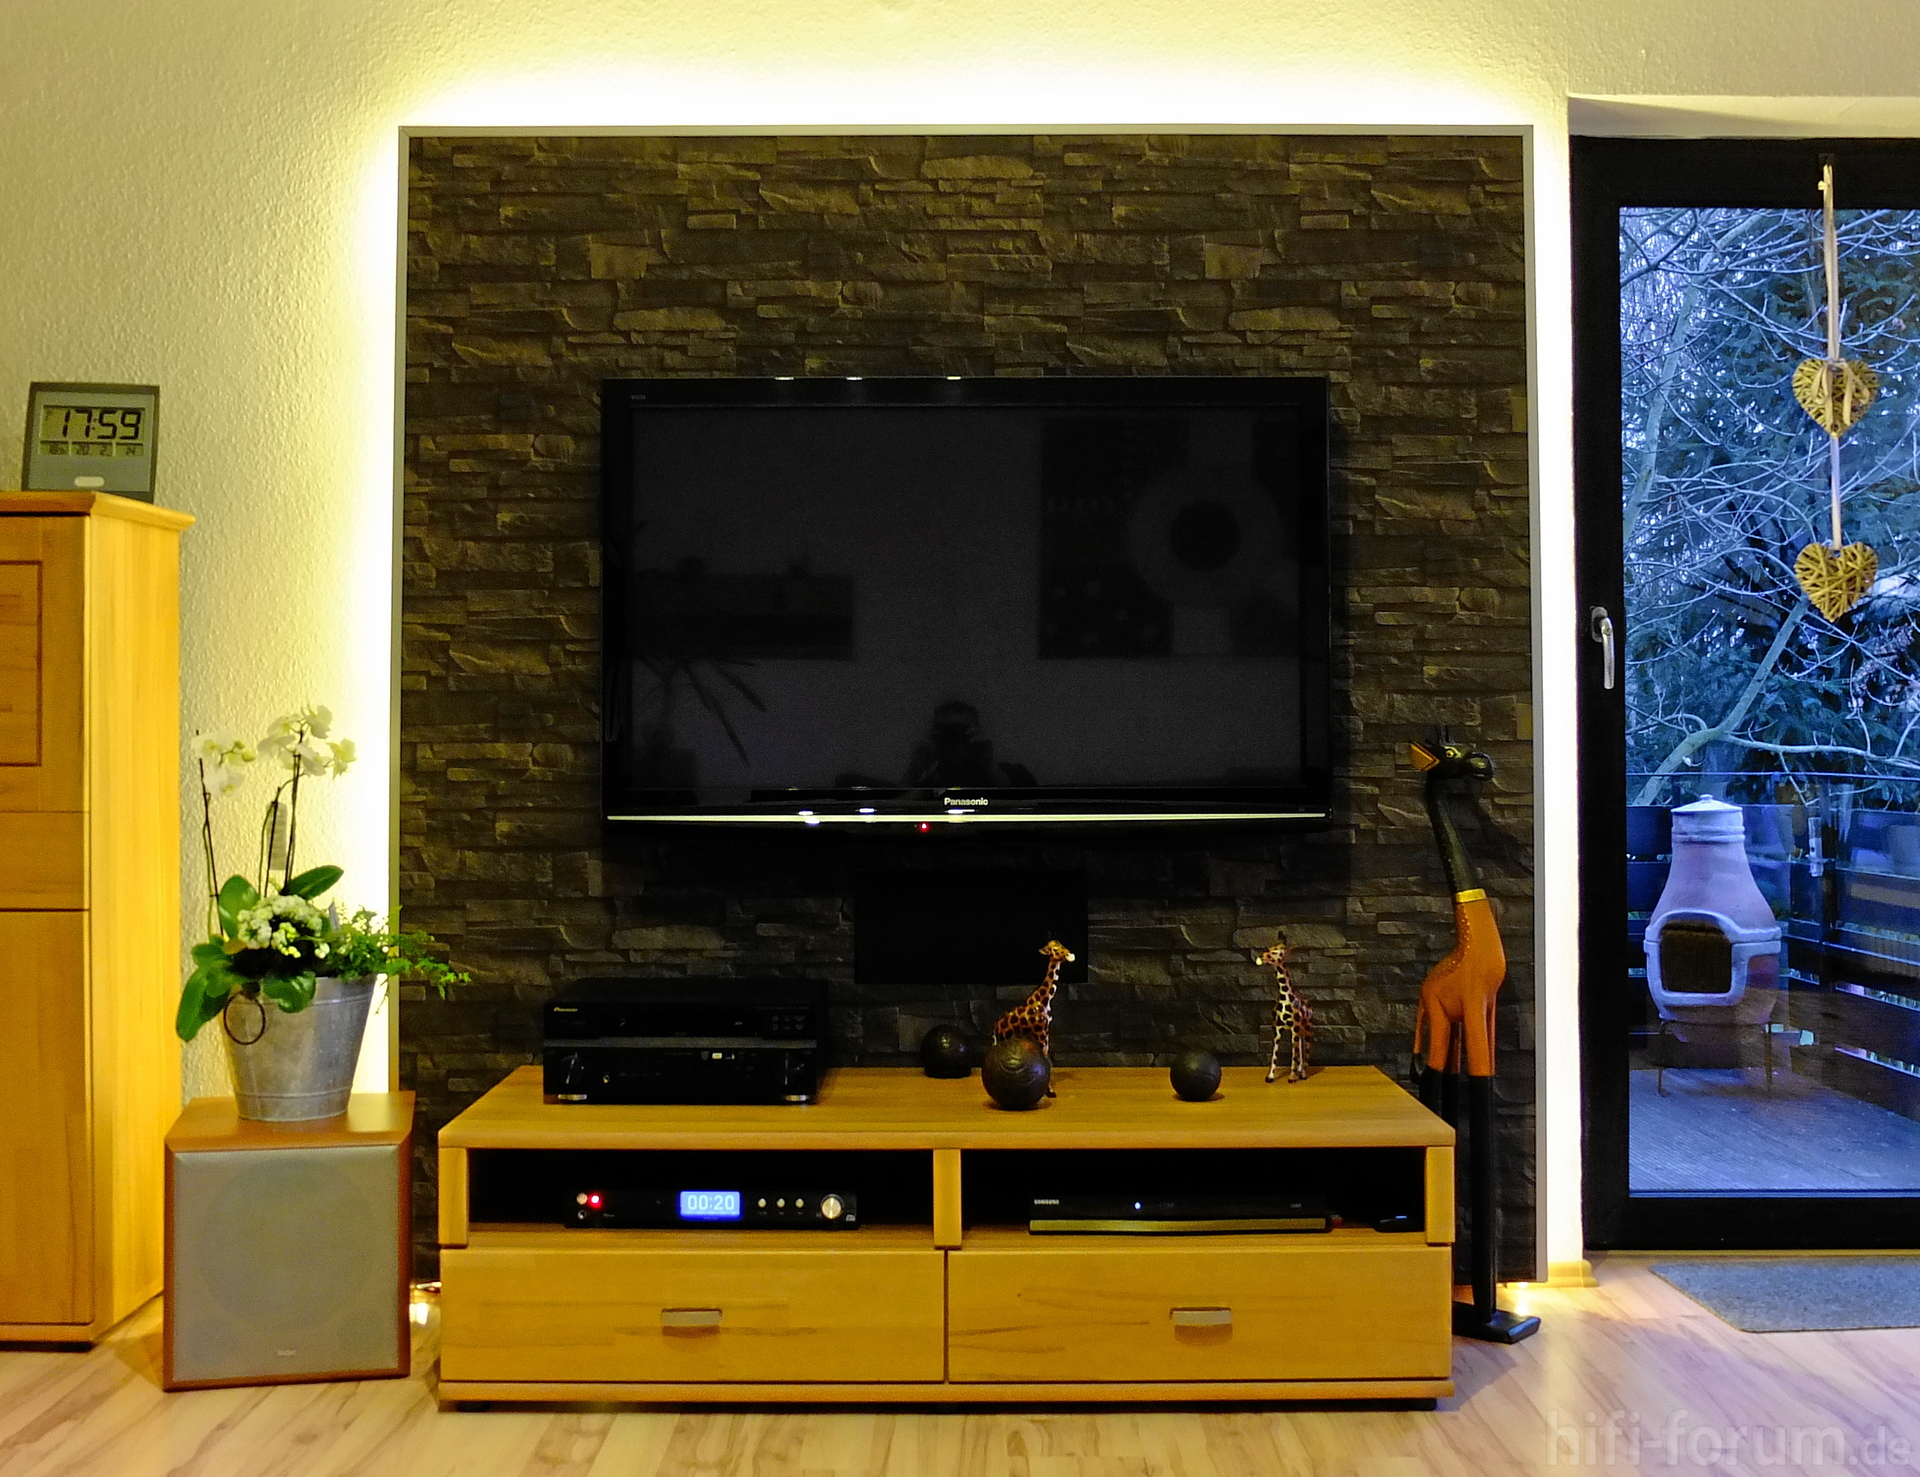 wand hinter fernseher gestalten die sch nsten. Black Bedroom Furniture Sets. Home Design Ideas